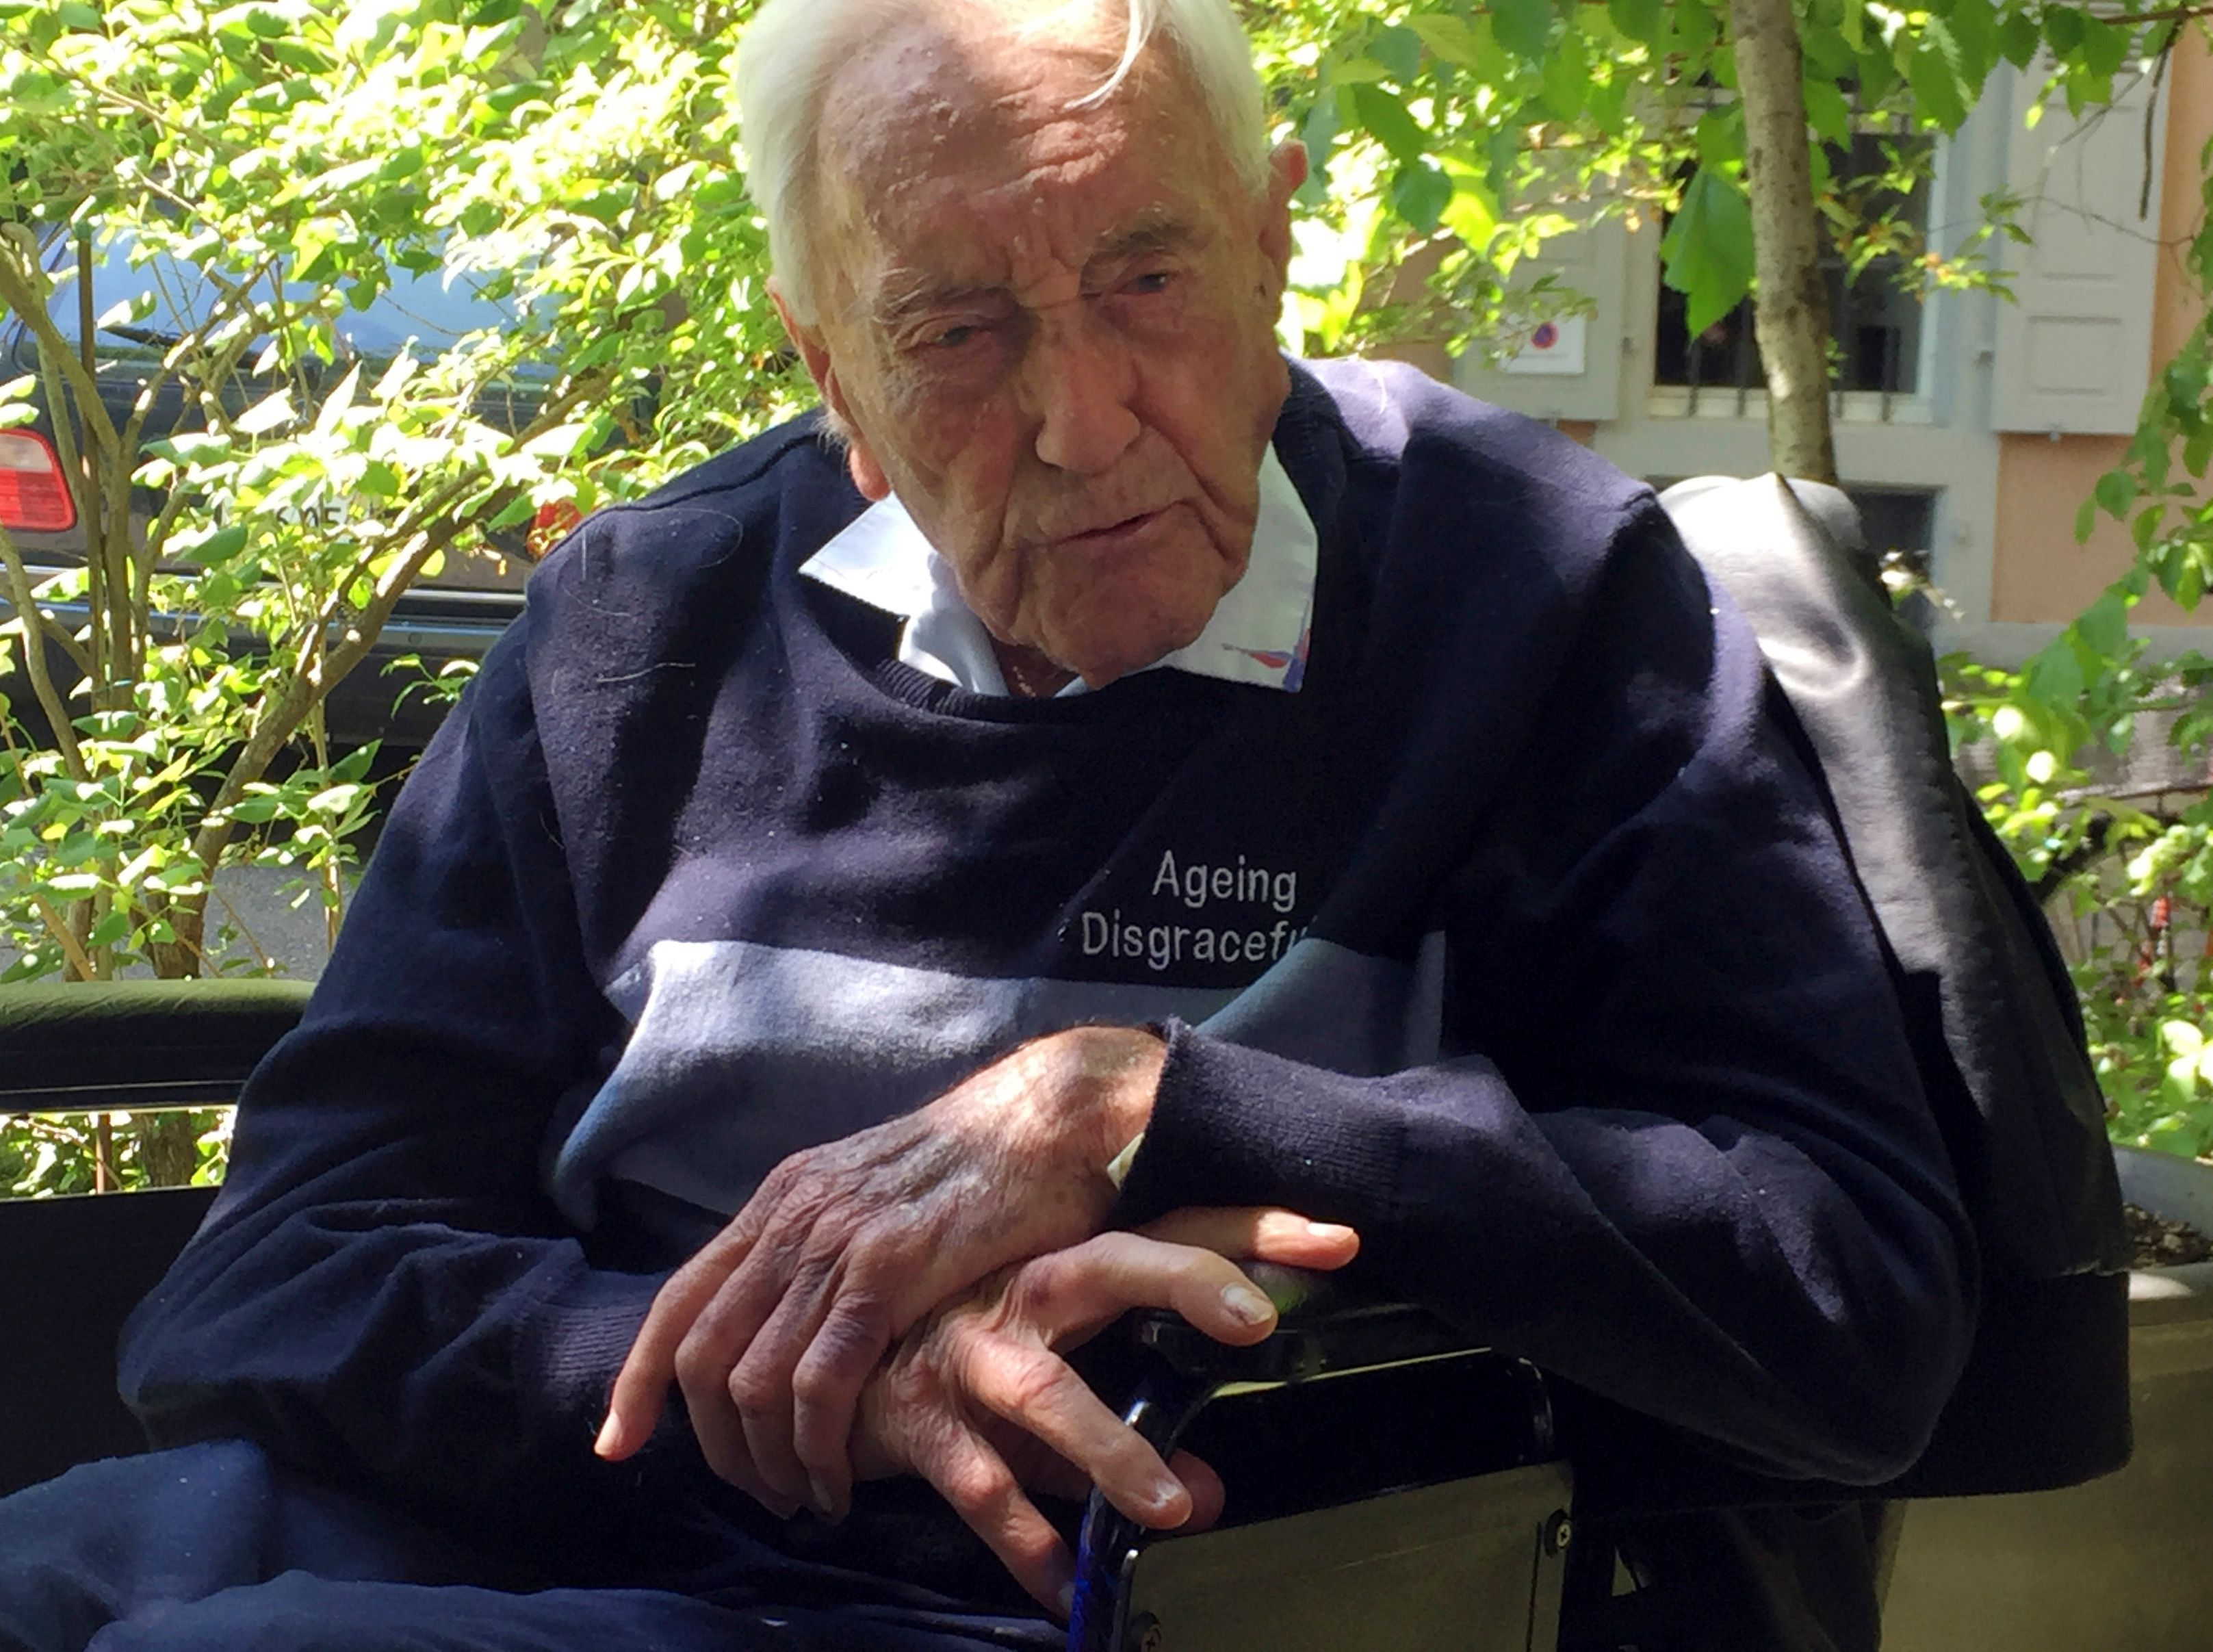 104-year-old Australian scientist heads to Switzerland to end his life